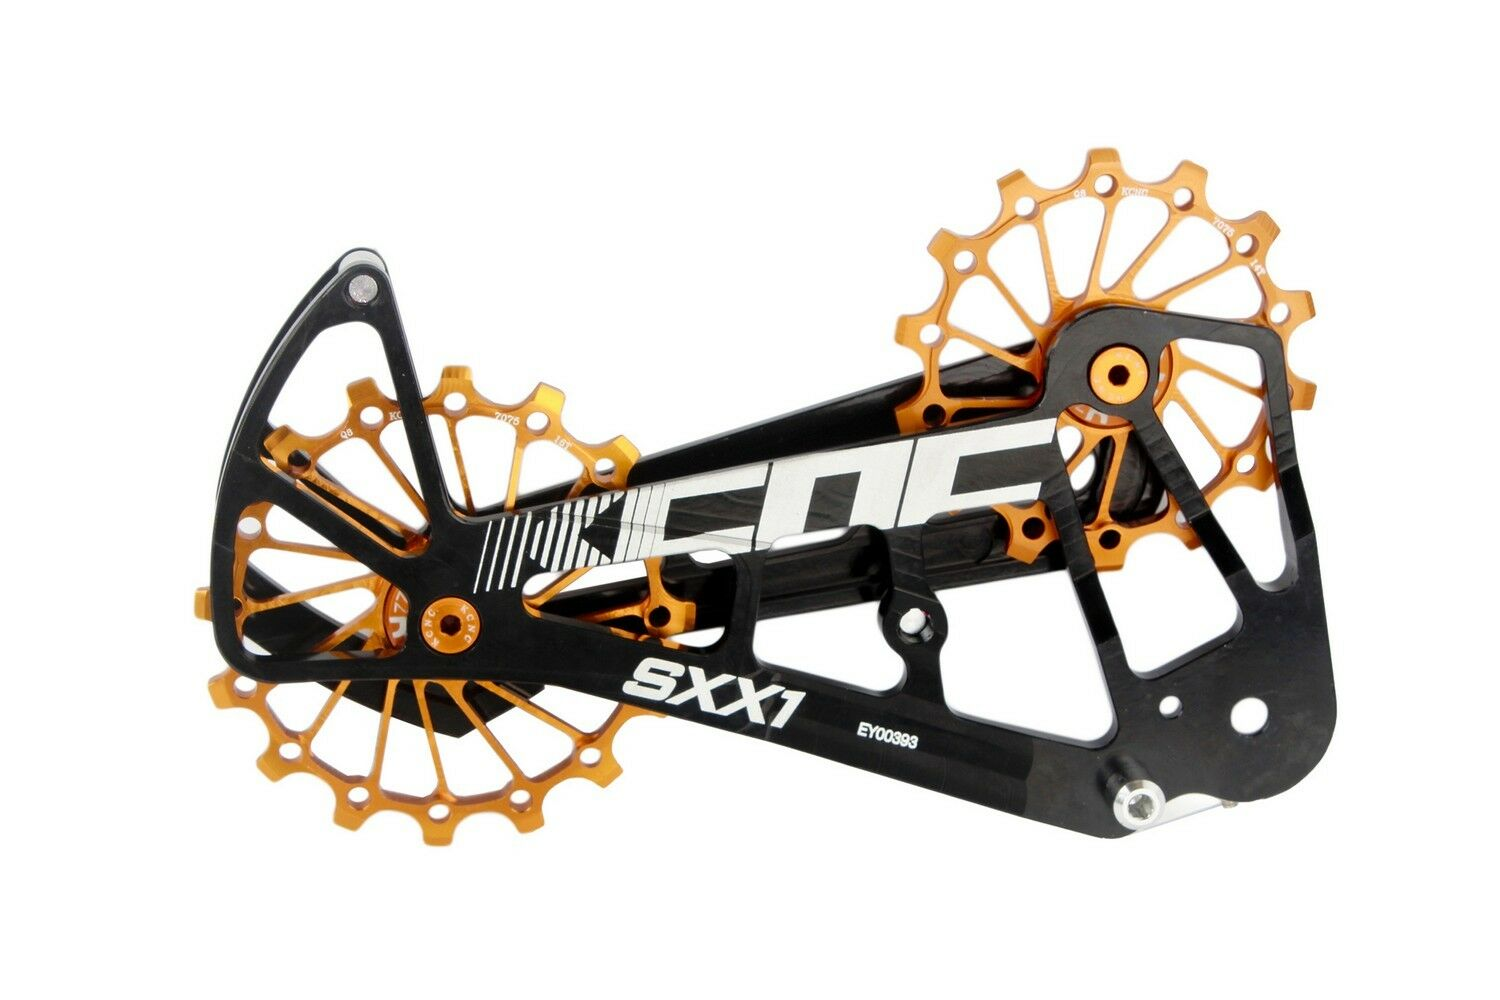 KCNC SXX1 Mountain Bicycle Bike Oversized Pulley Cage for Sram Eagle XX1 gold